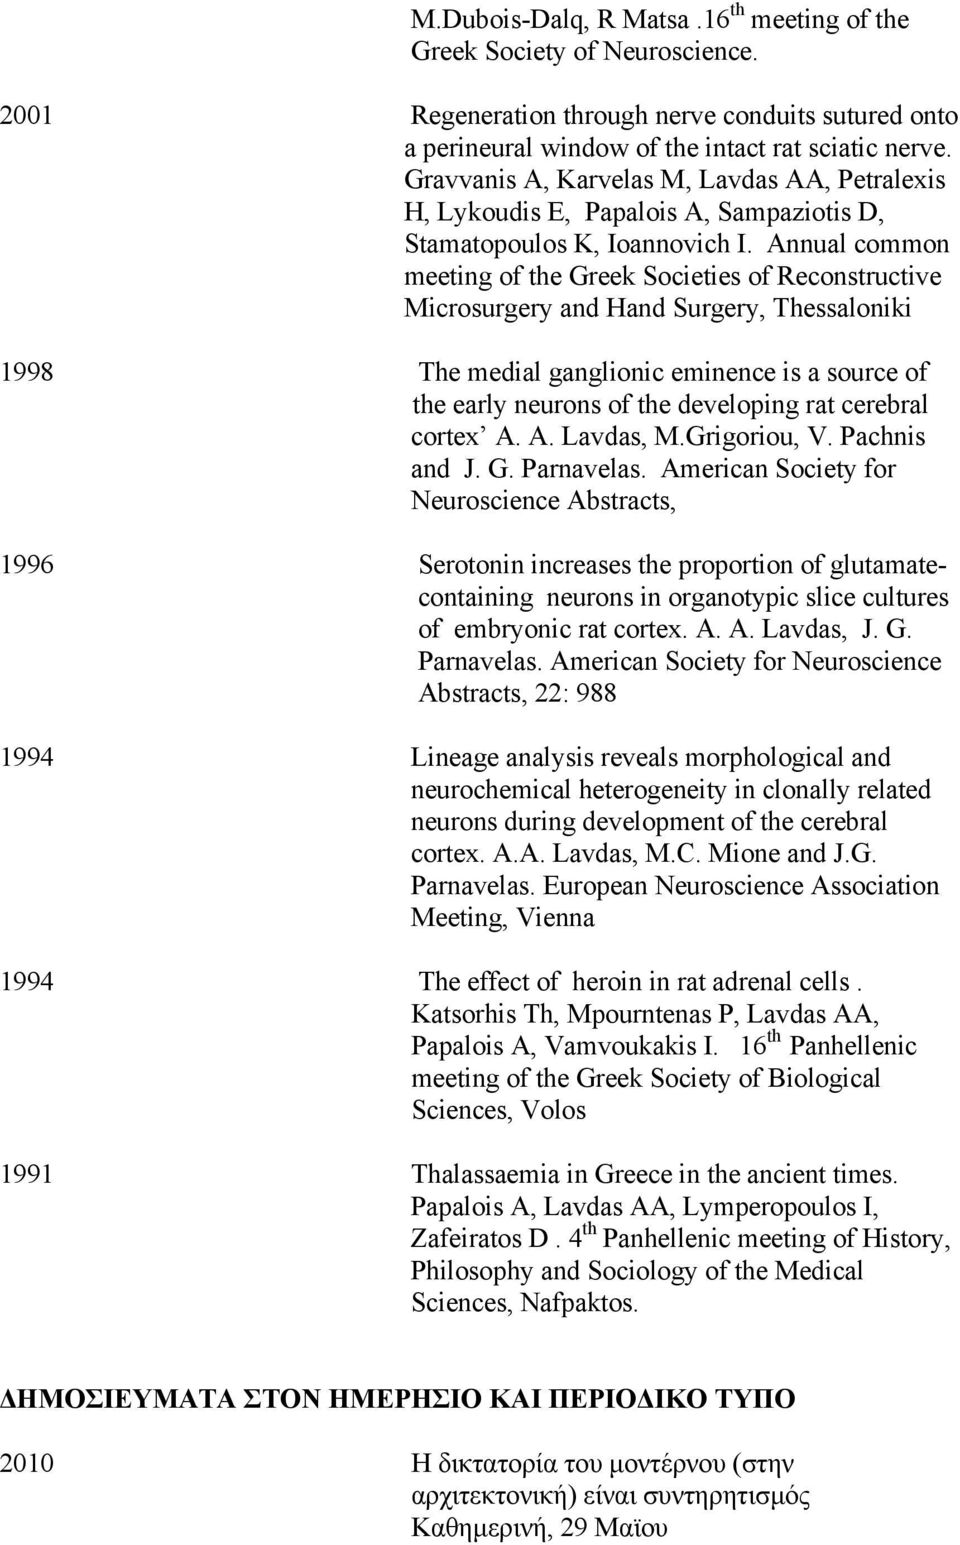 Annual common meeting of the Greek Societies of Reconstructive Microsurgery and Hand Surgery, Thessaloniki 1998 The medial ganglionic eminence is a source of the early neurons of the developing rat